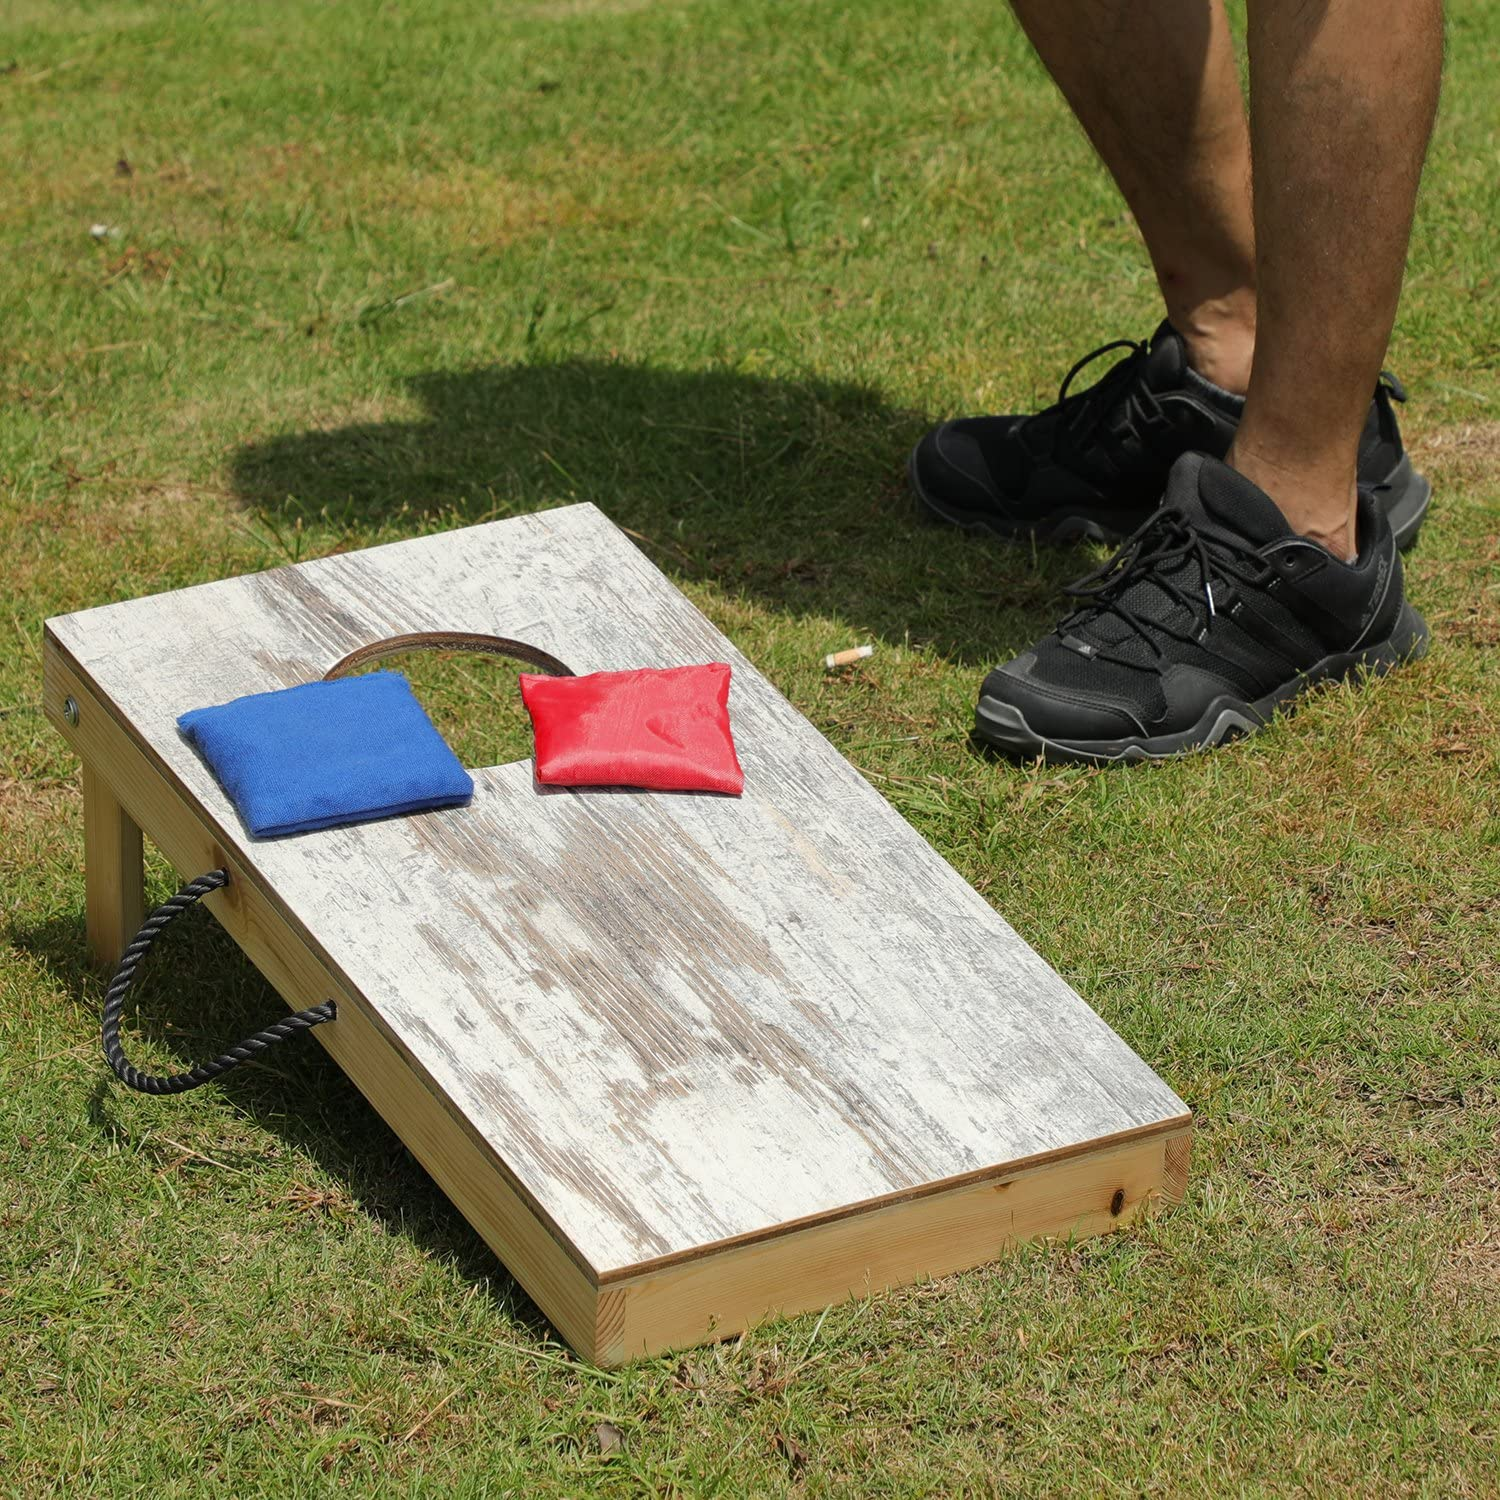 Includes Set of 8 Corn Hole Toss Bags 1x 2 Corn Hole Game Boards Whited Wood Printed OOFIT Solid Wood Premium Cornhole Set